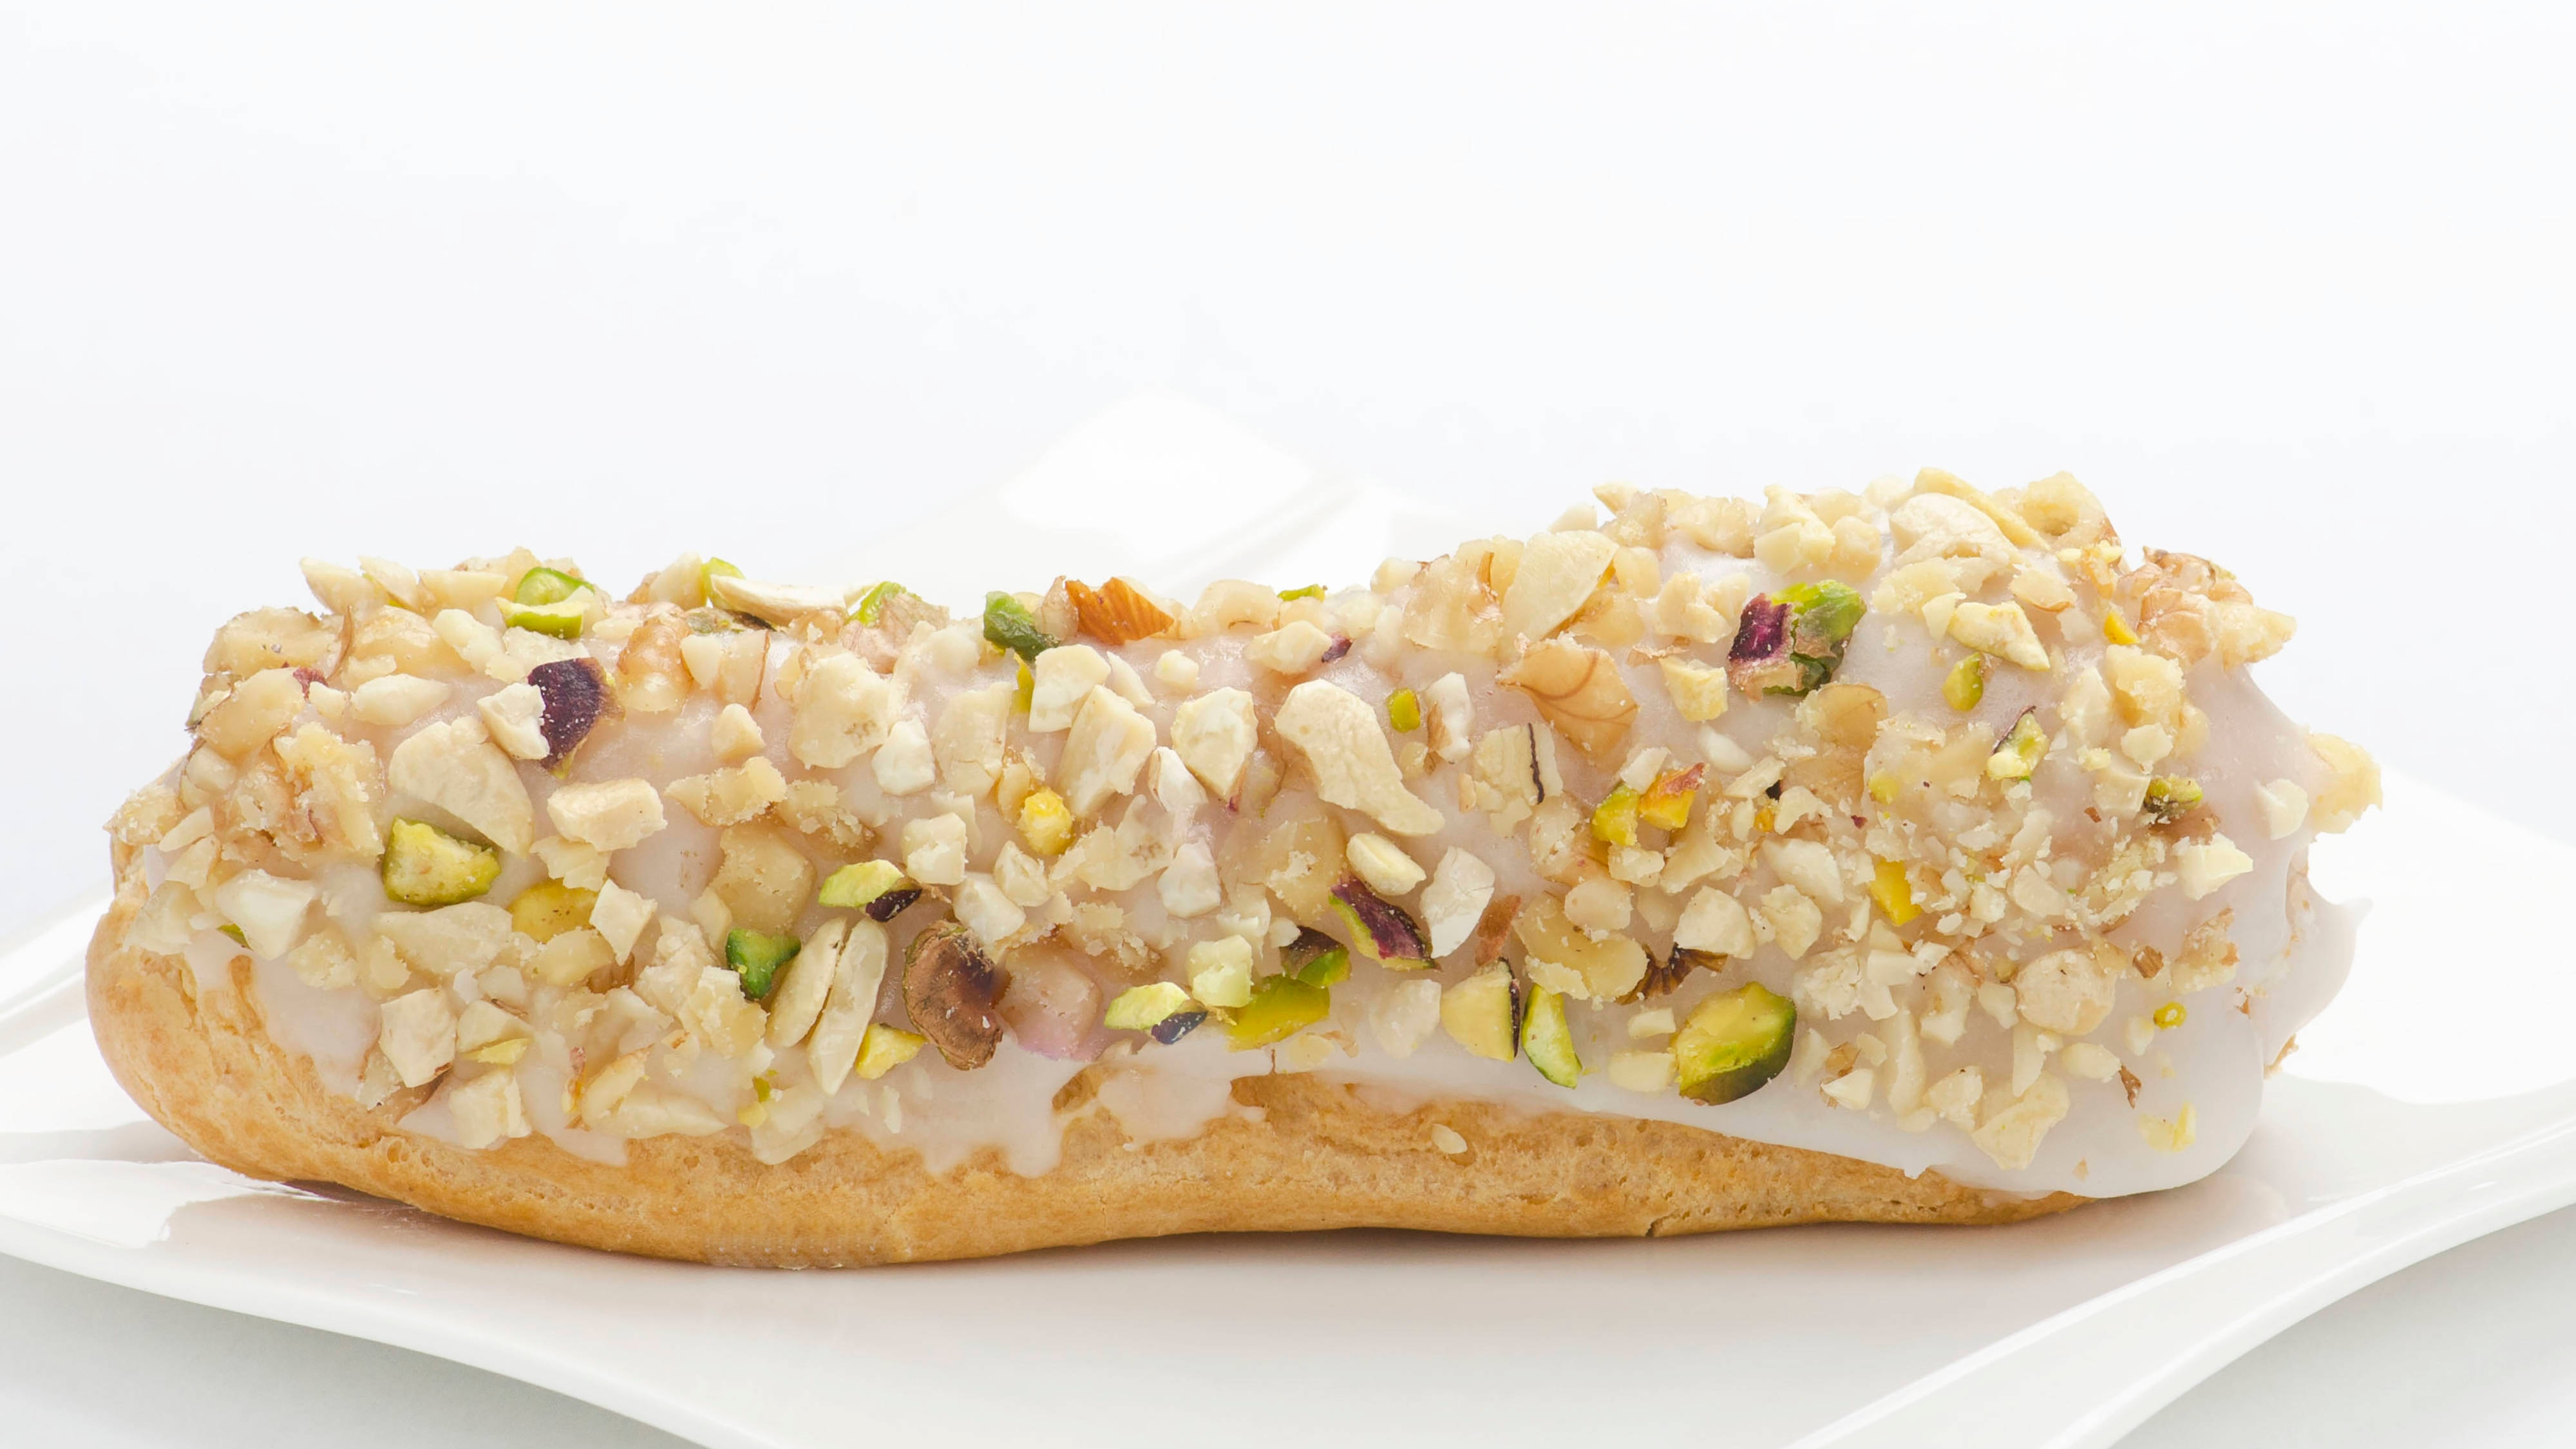 Localized Eclair